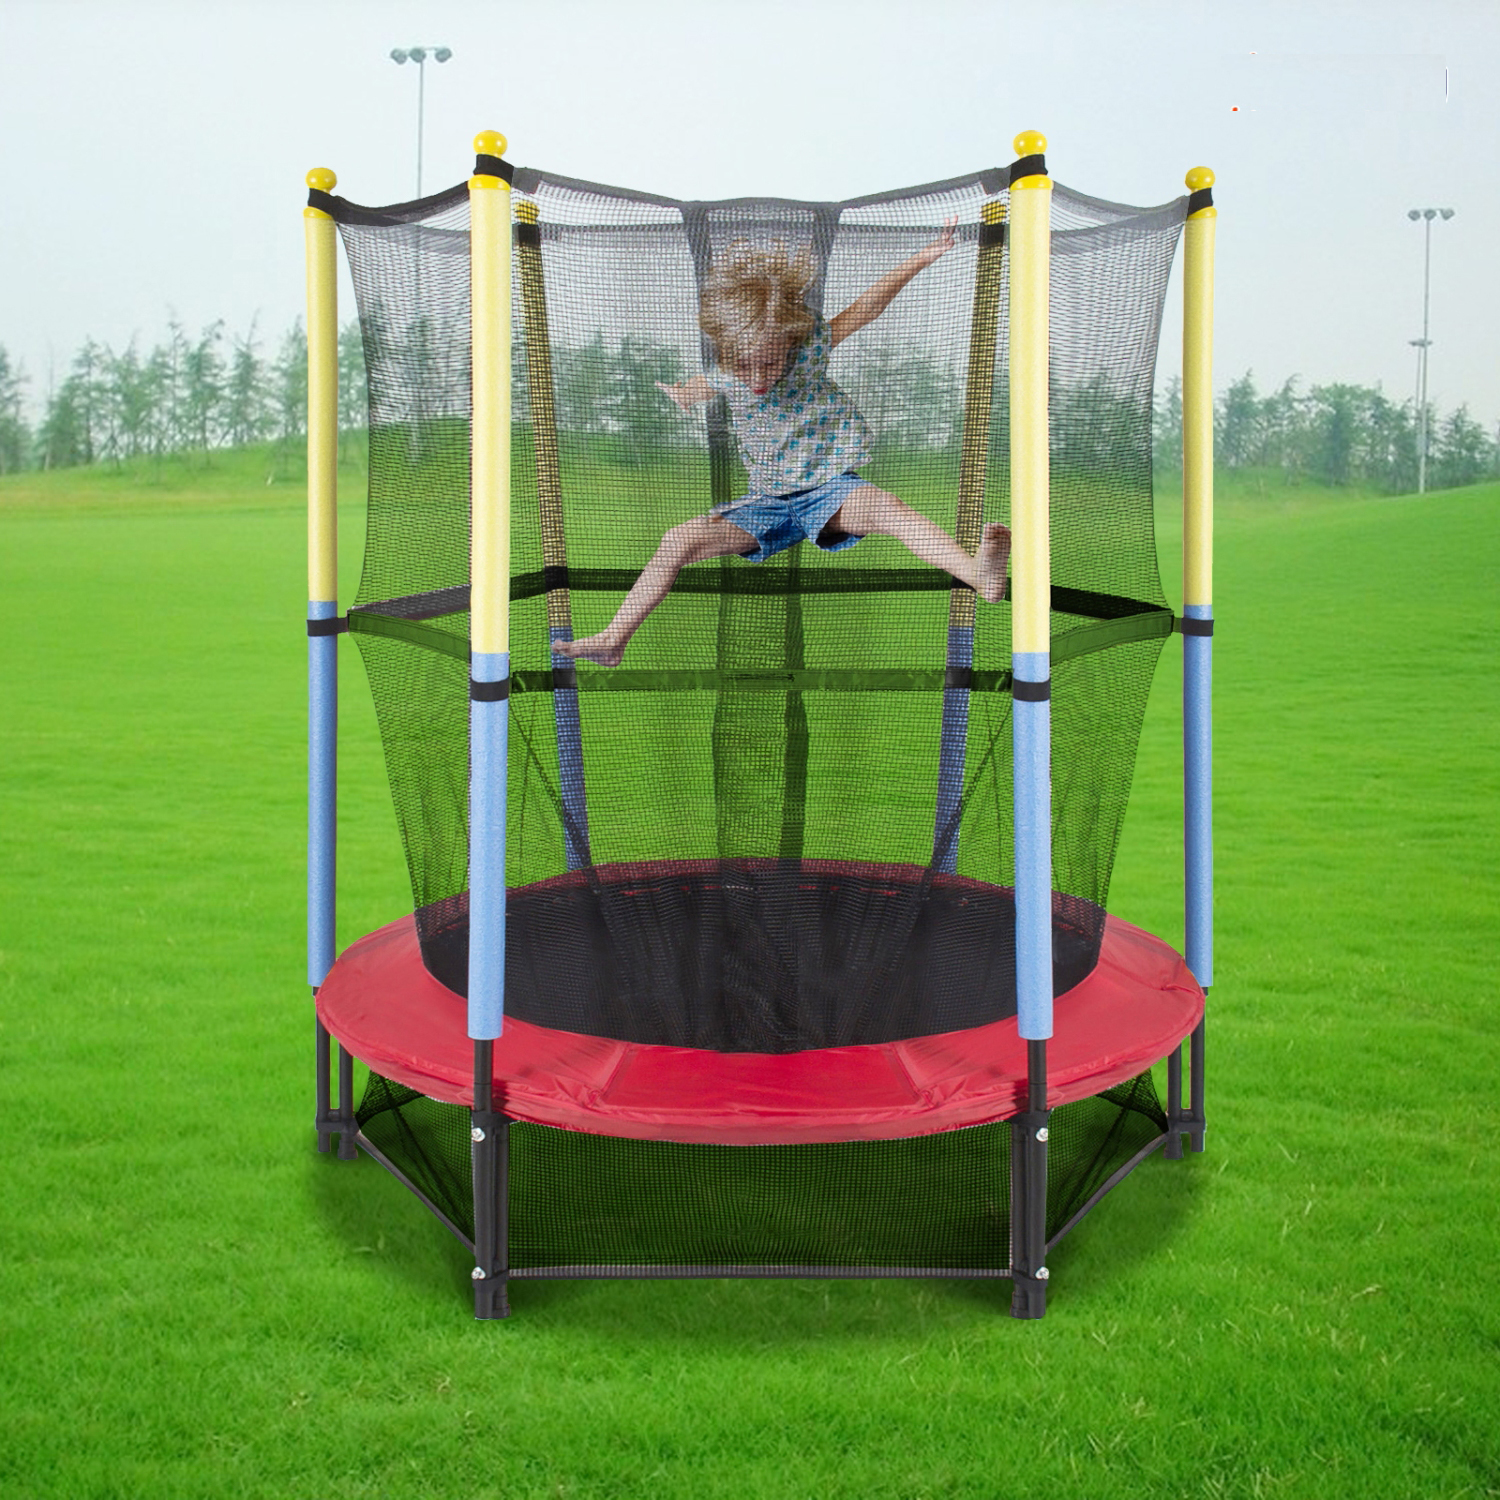 "Softbounce And Hardbounce Mini Trampolines: 55"" Round Youth Kids Trampoline Combo W/Enclosure Net Pad"